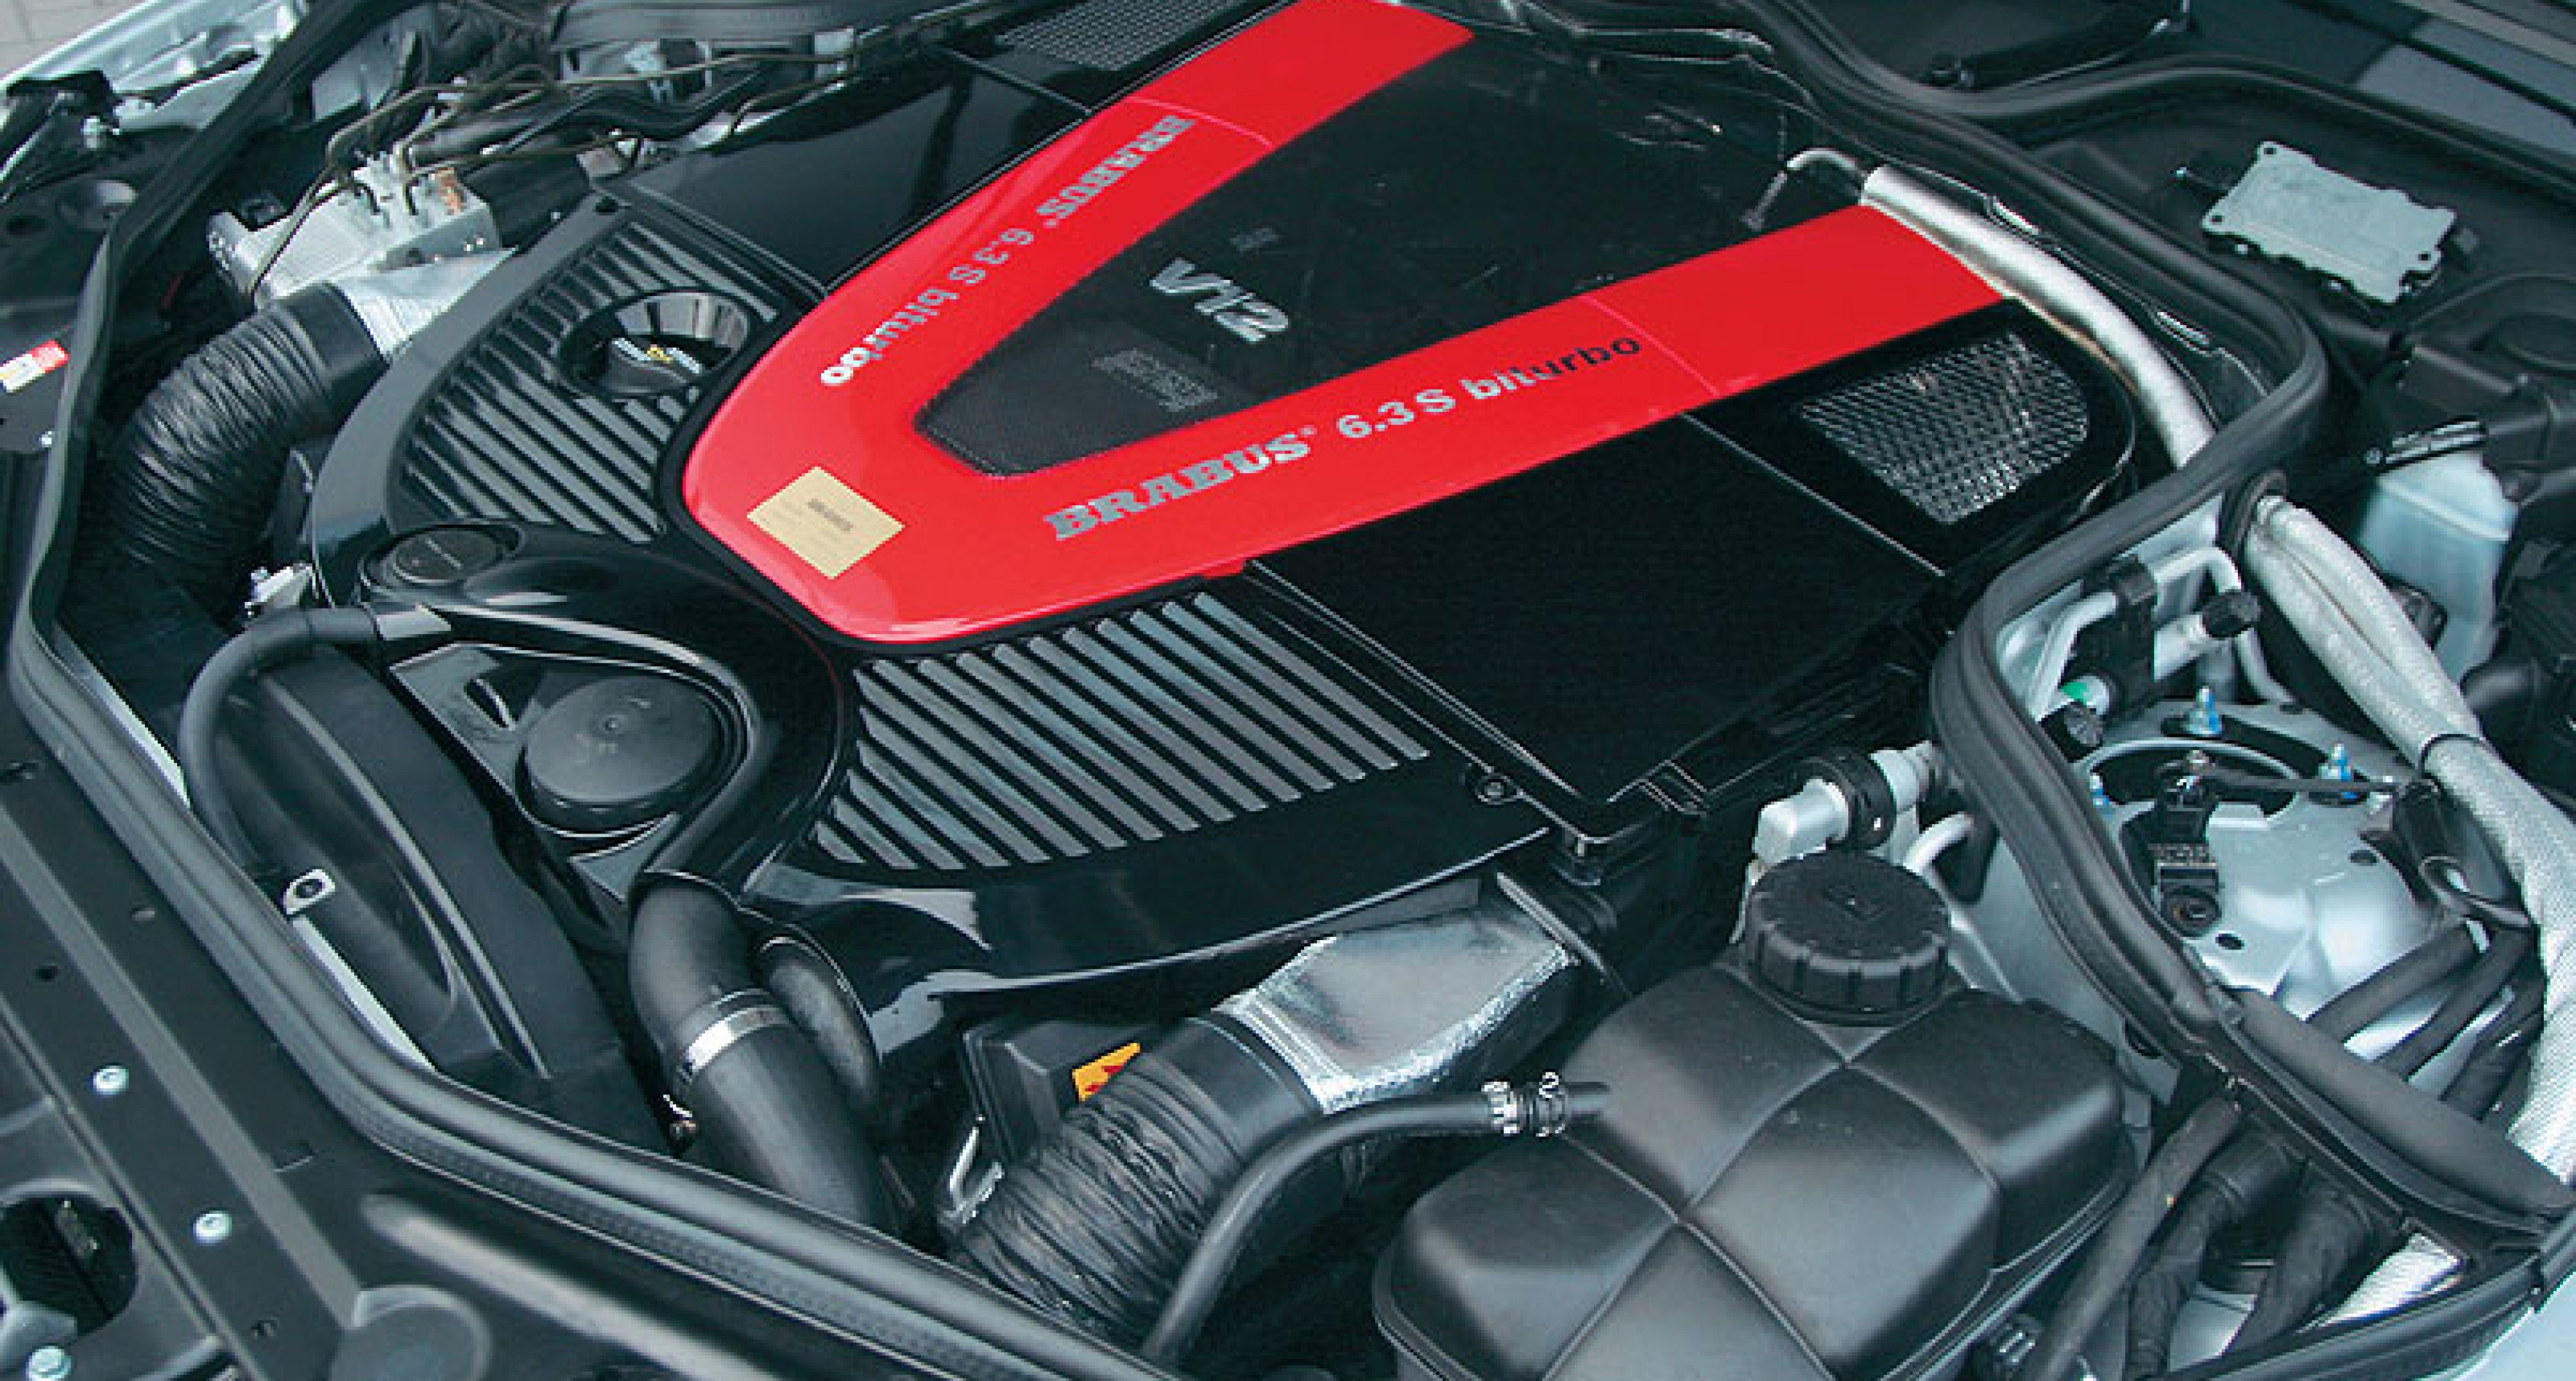 The BRABUS Tuning Programme for the new Mercedes CL Coupe